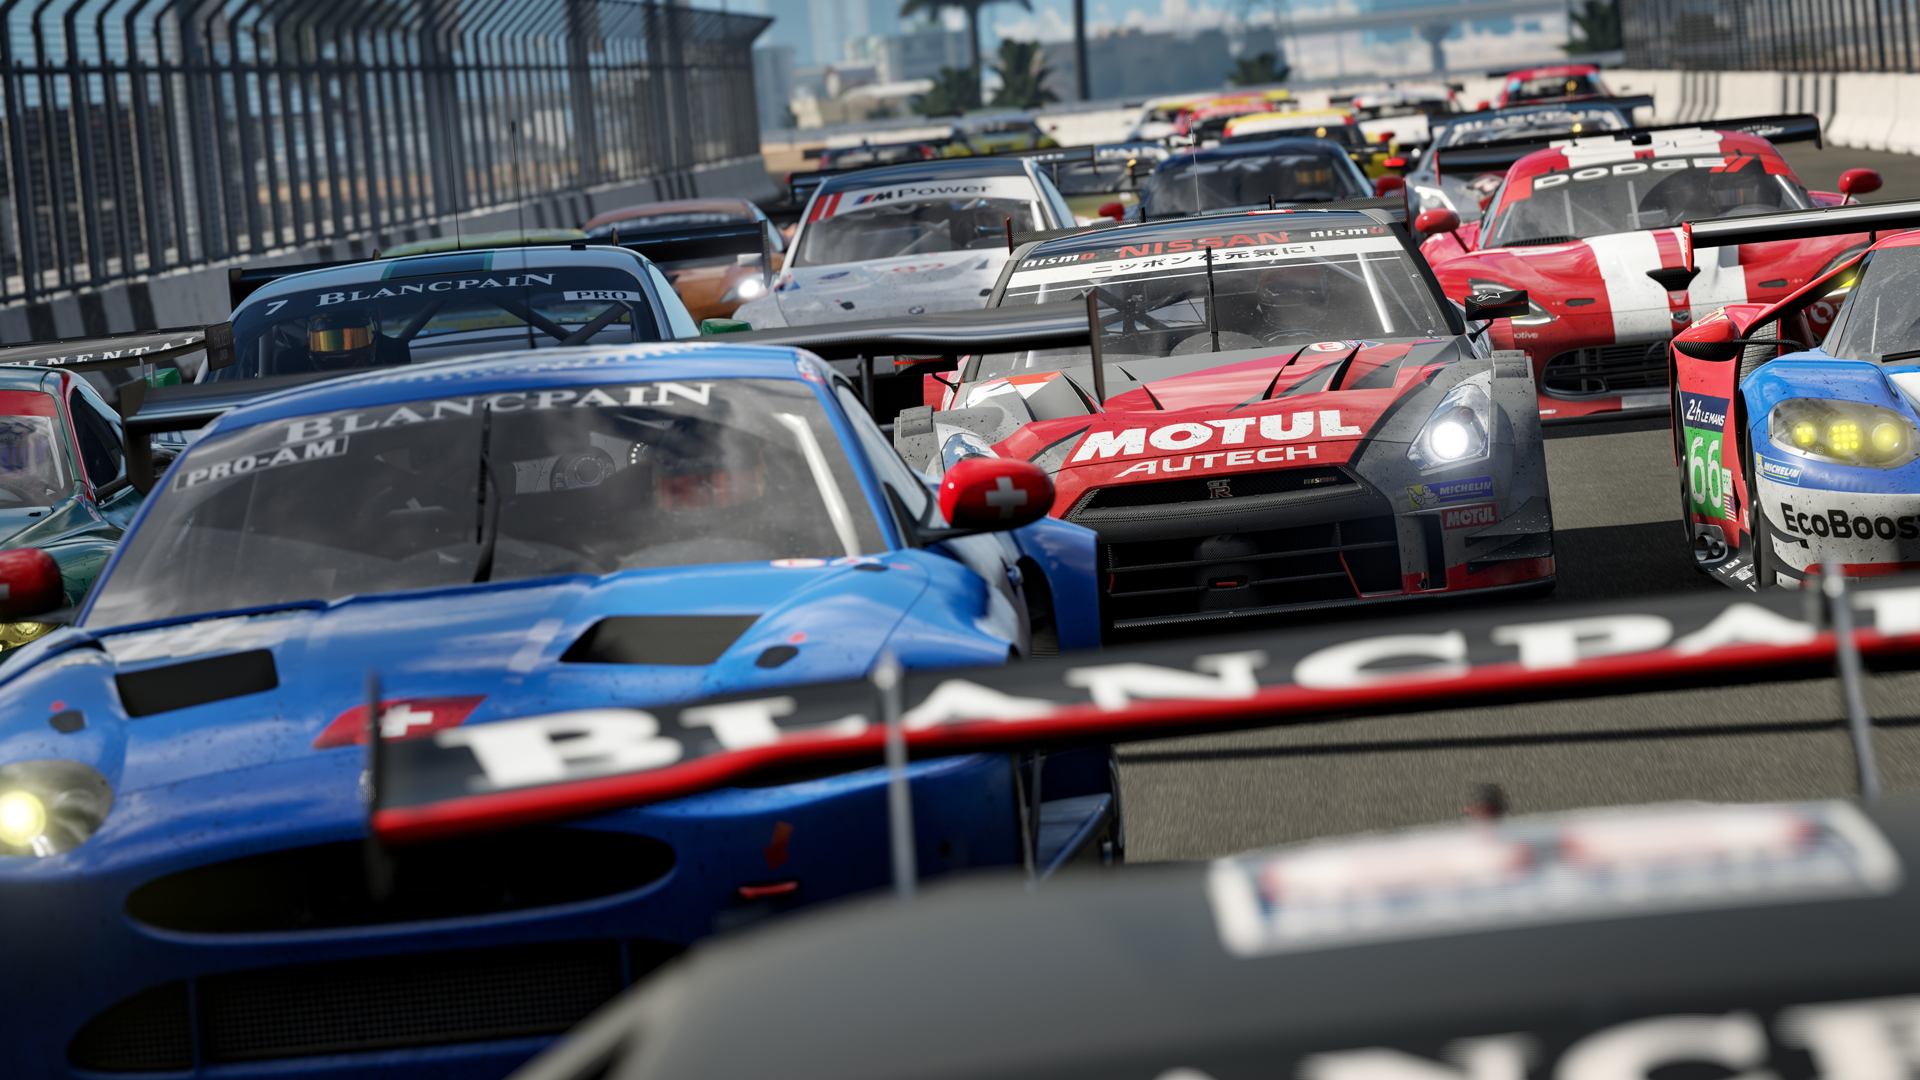 How to progress fast, and get the best cars in Forza